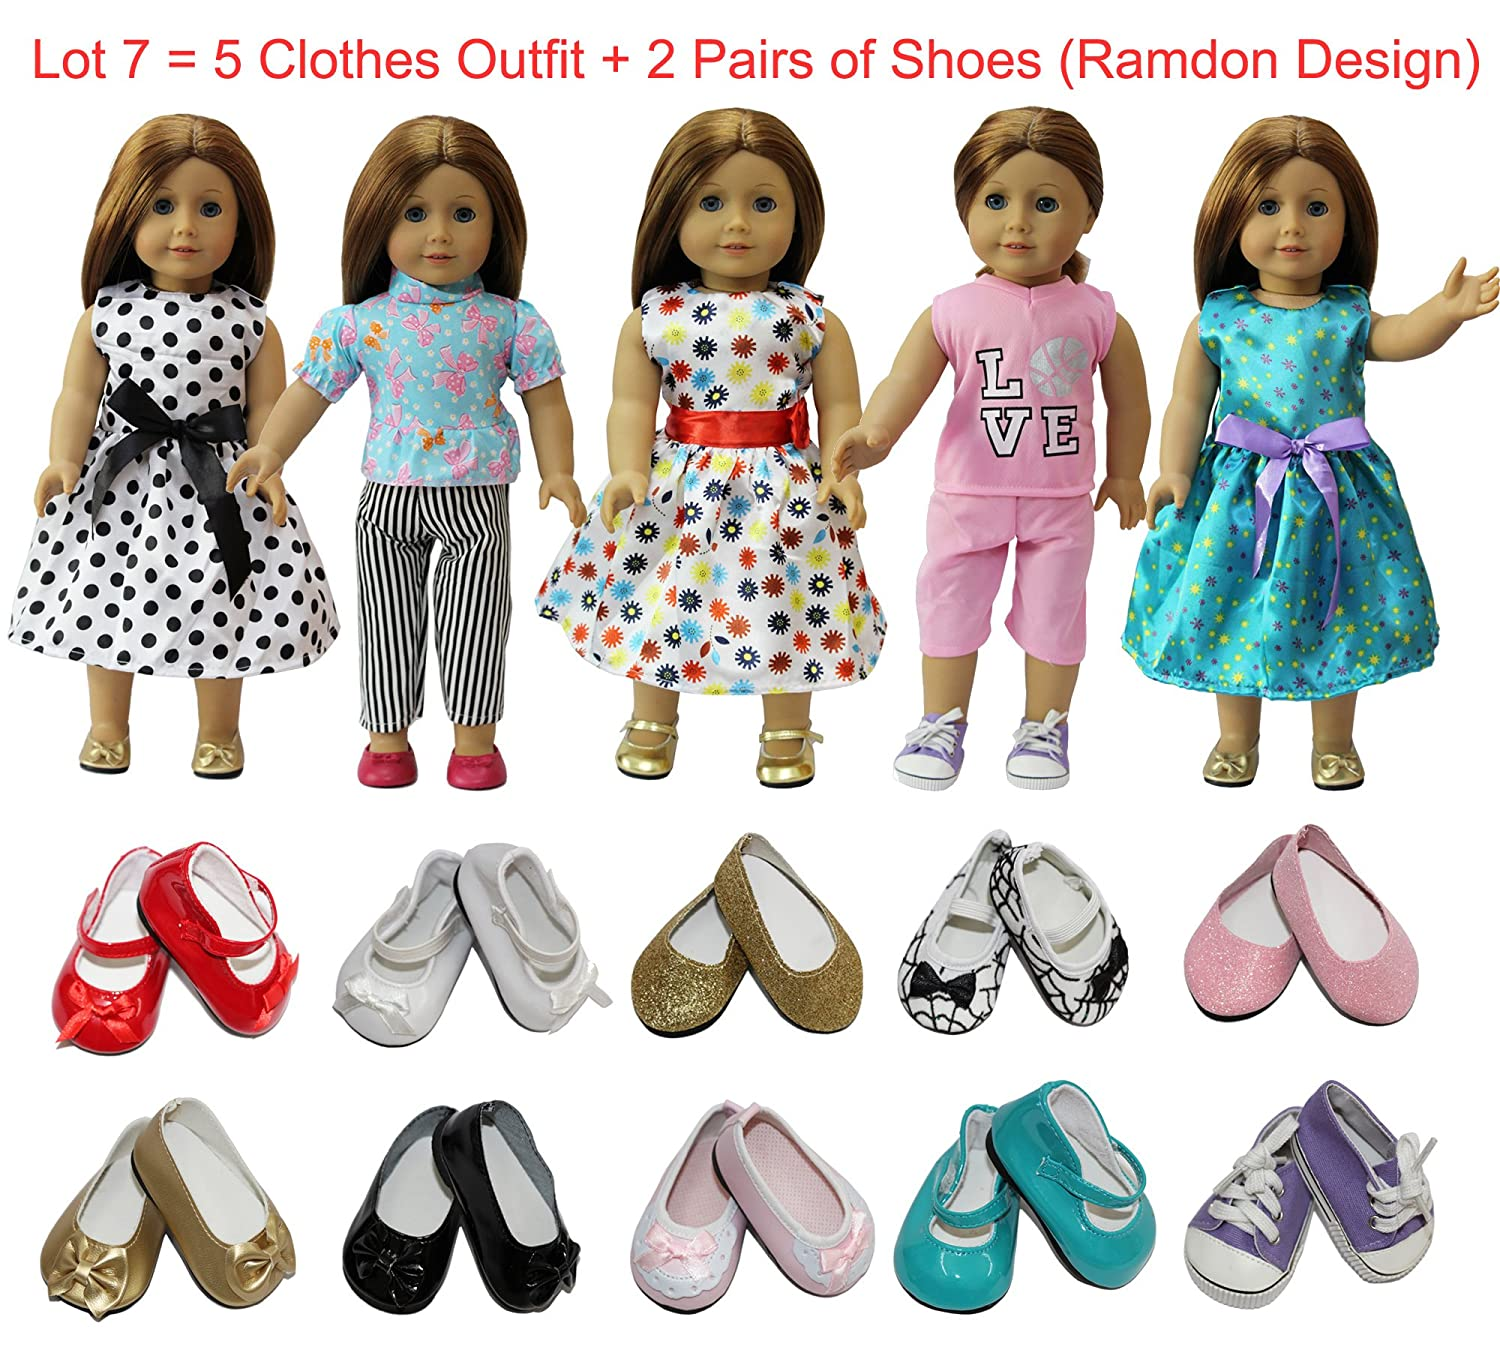 ZITA ELEMENT American 18 inch Girl Doll Outfits Lot 7 = 5 Daily Costumes Clothes + 2 Ramdon Style Shoes for 18' Girl Doll Accessories